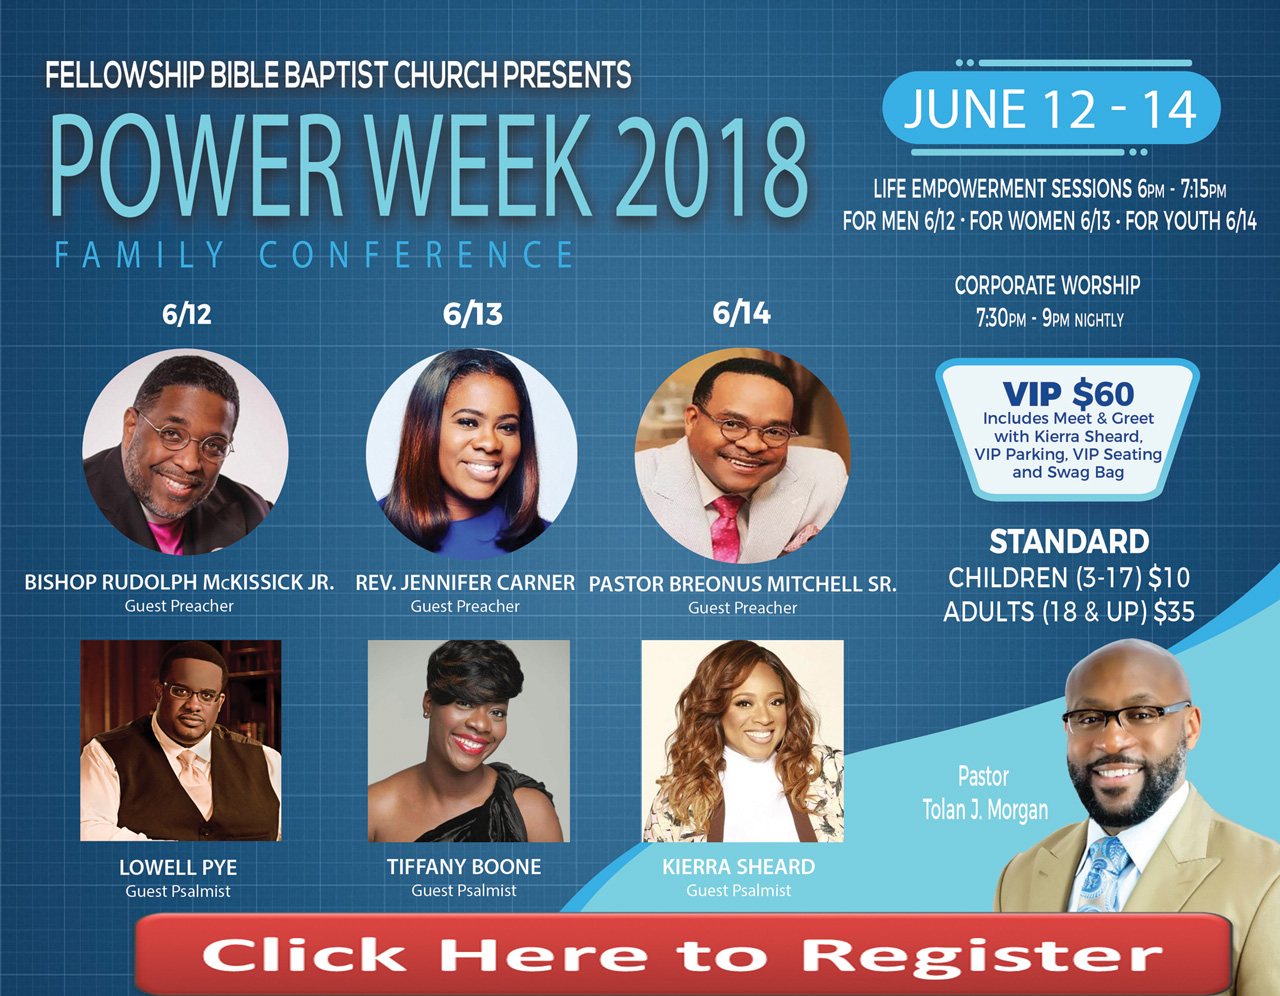 FBBC Power Week 2018